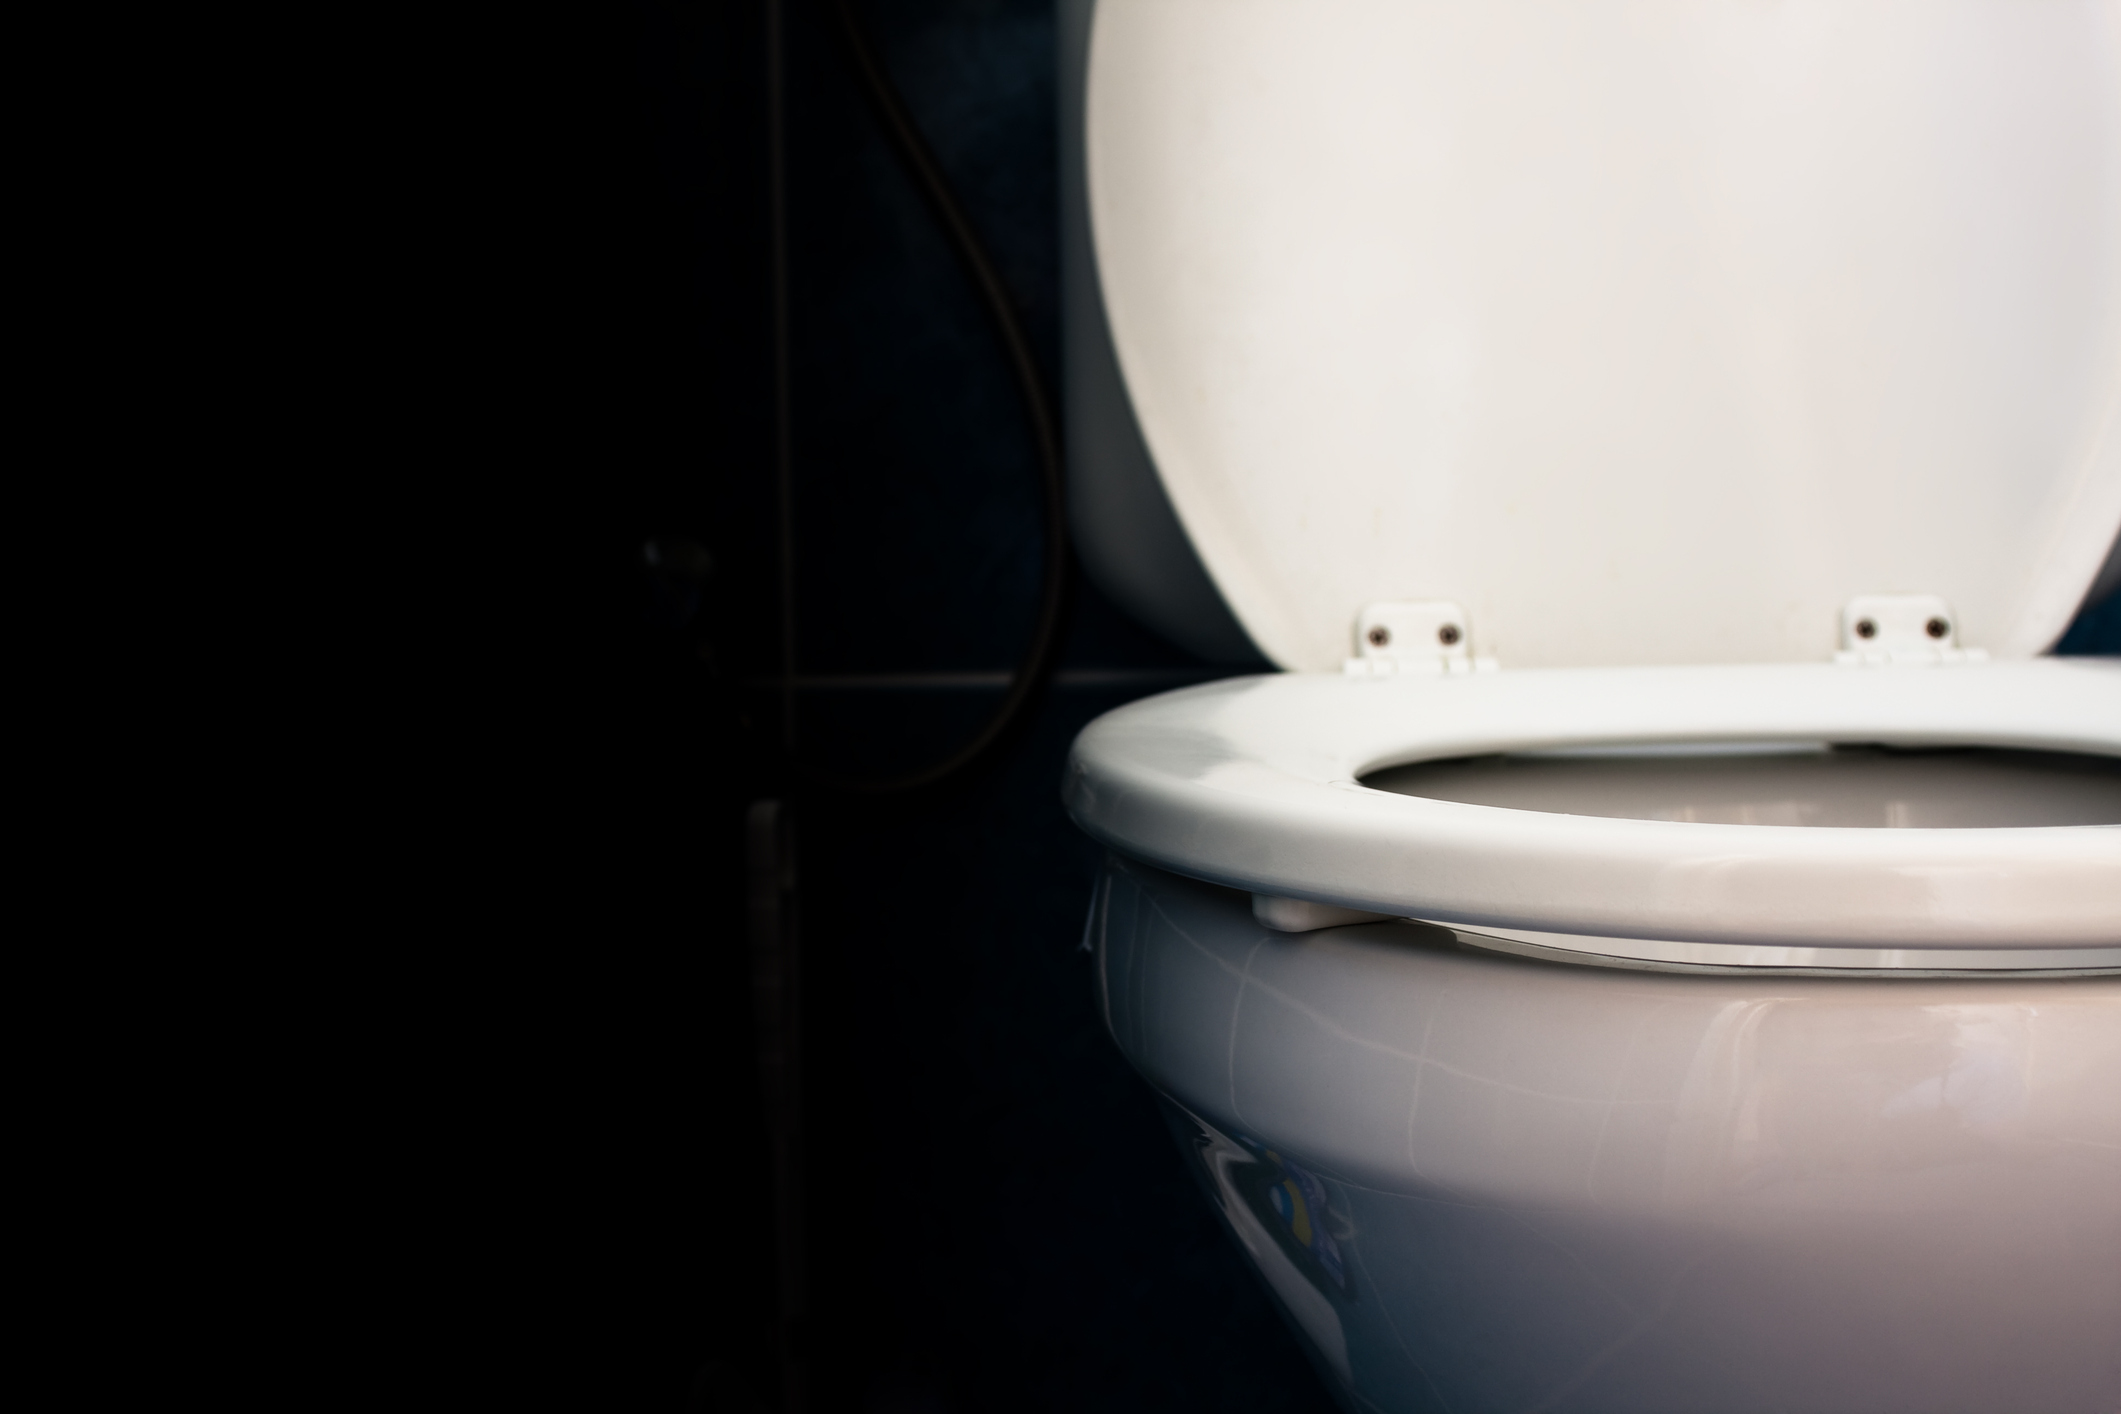 Should Our Kids Use Toilet Seat Covers?